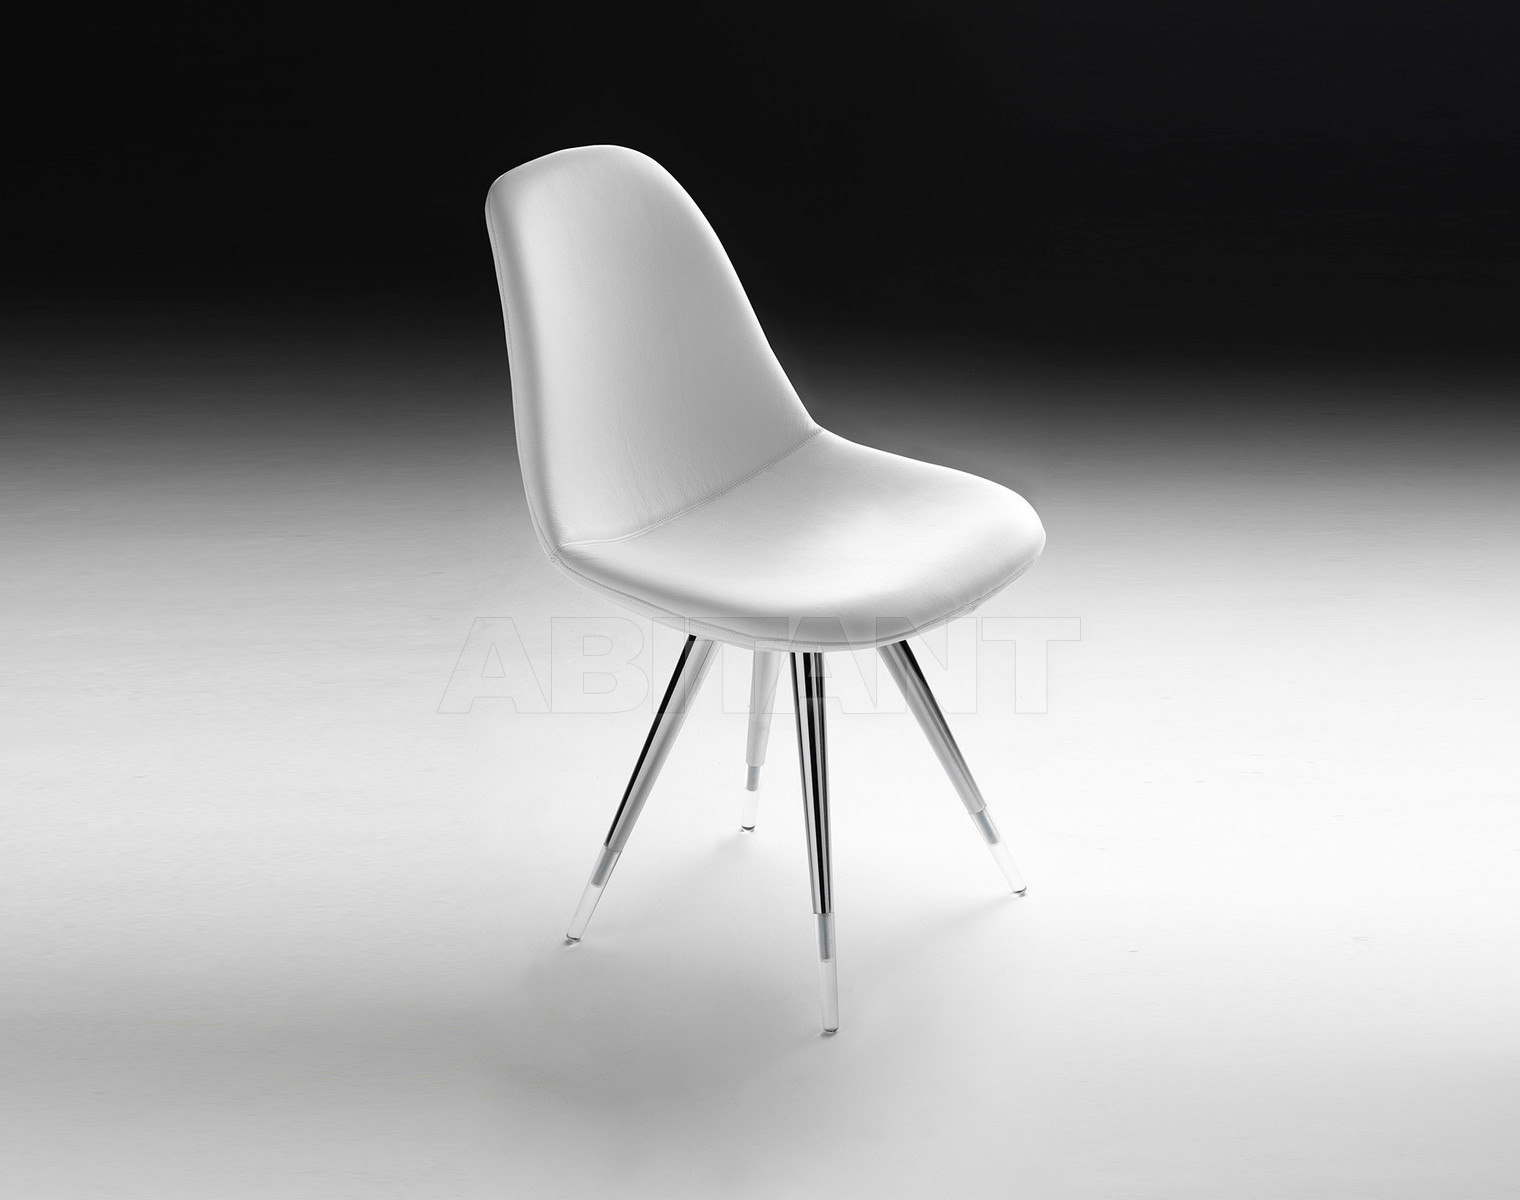 Купить Стул Kubikoff Gino Lemson & Ruud Bos Angel'POP'Chair'